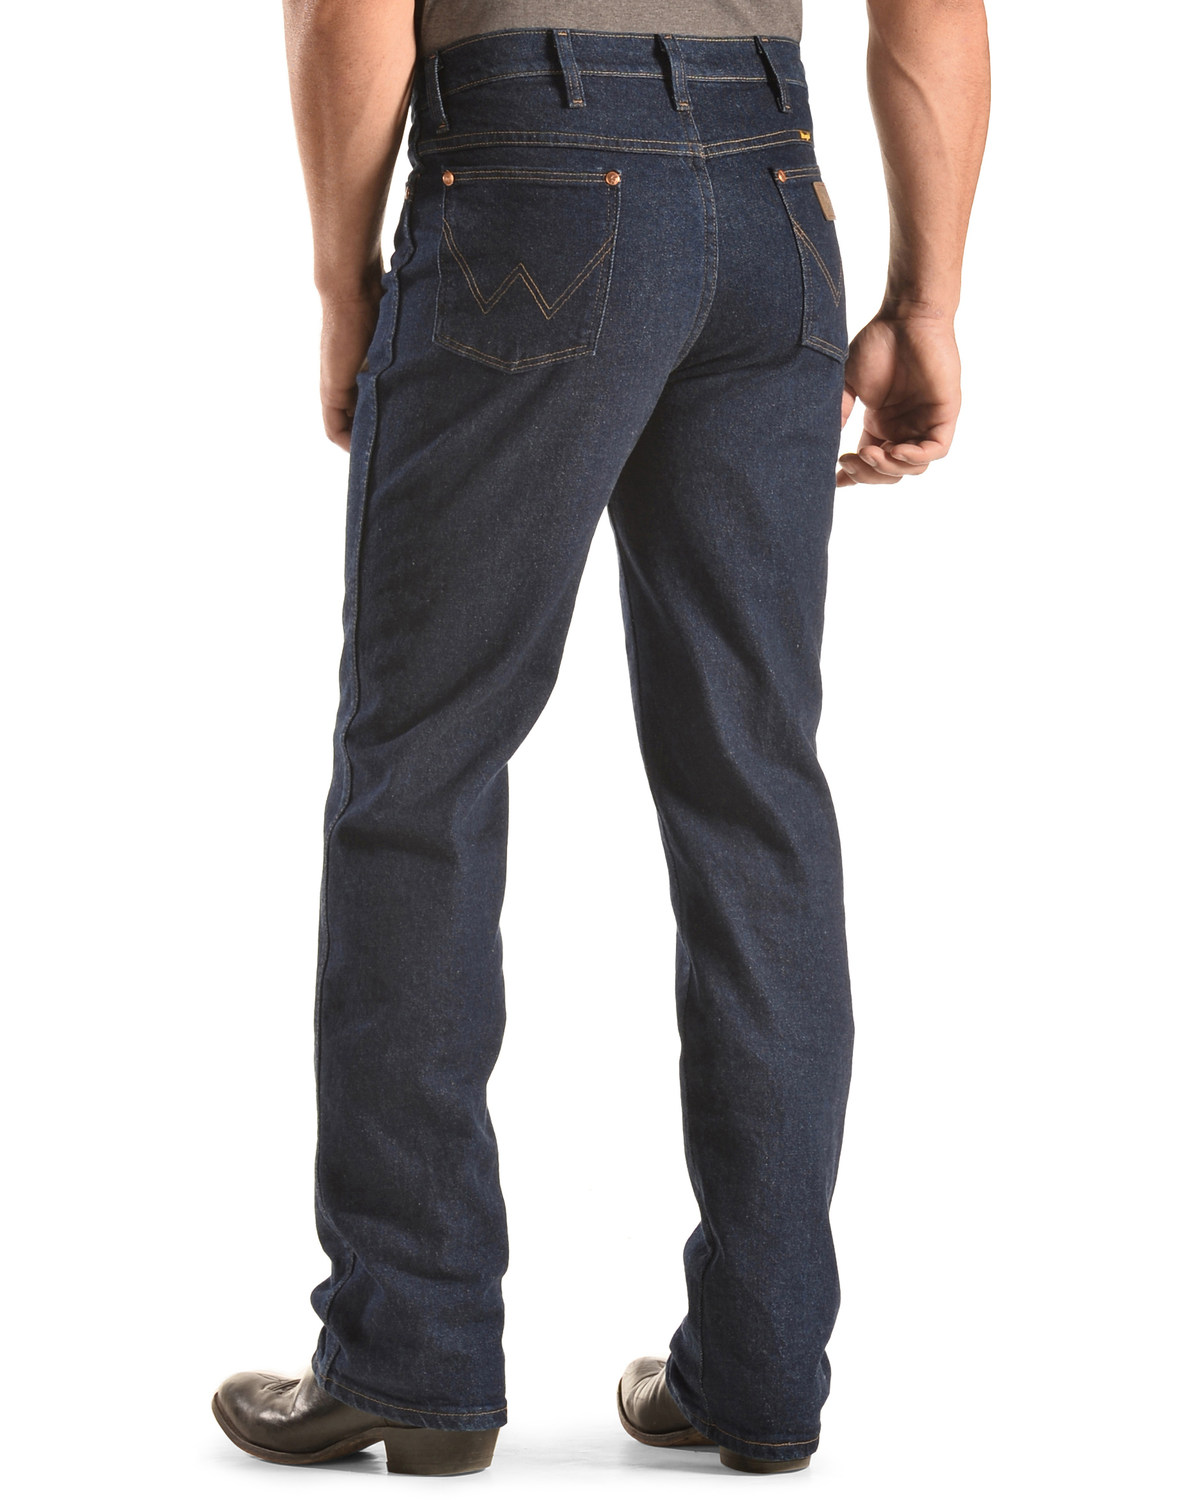 Shop for men's slim fit jeans or skinny fit jeans. Men's Wearhouse has the latest slim fit jeans for guys in a variety of styles, brands and colors.